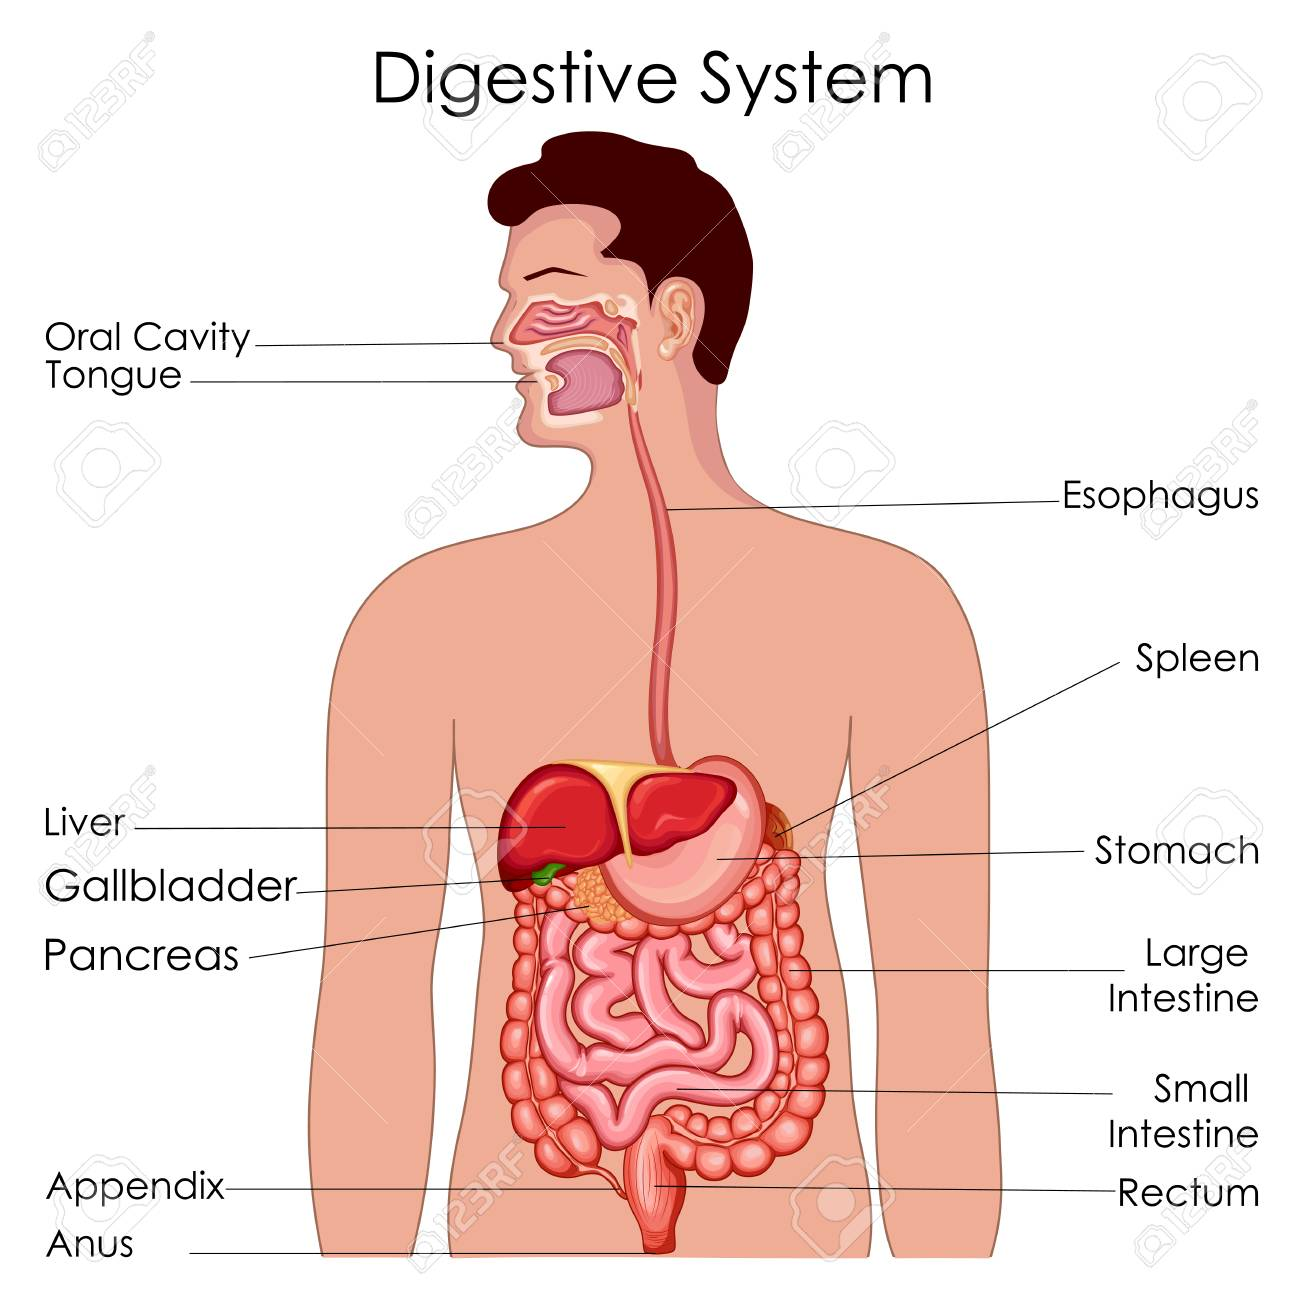 Medical education chart of biology for digestive system diagram medical education chart of biology for digestive system diagram vector illustration stock vector 79651317 ccuart Images